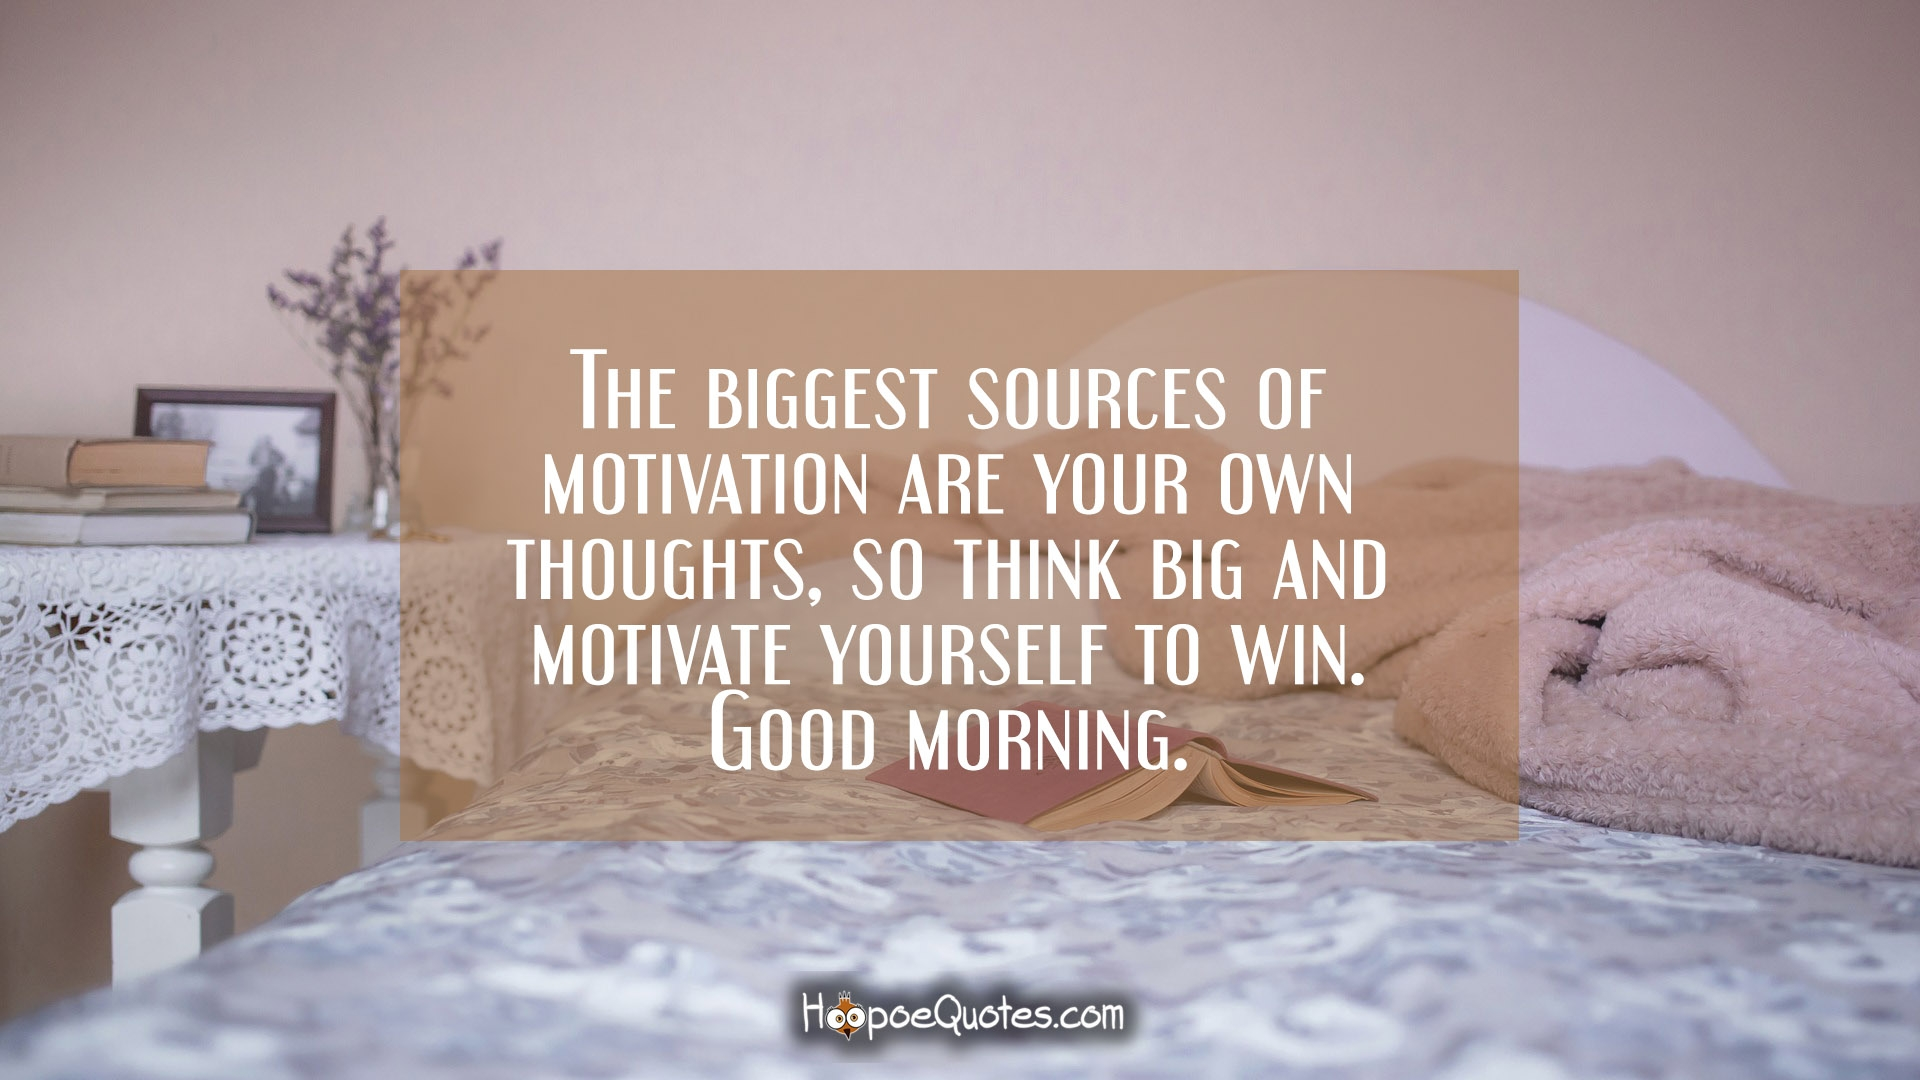 Romantic Good Morning Wallpaper With Quotes The Biggest Sources Of Motivation Are Your Own Thoughts